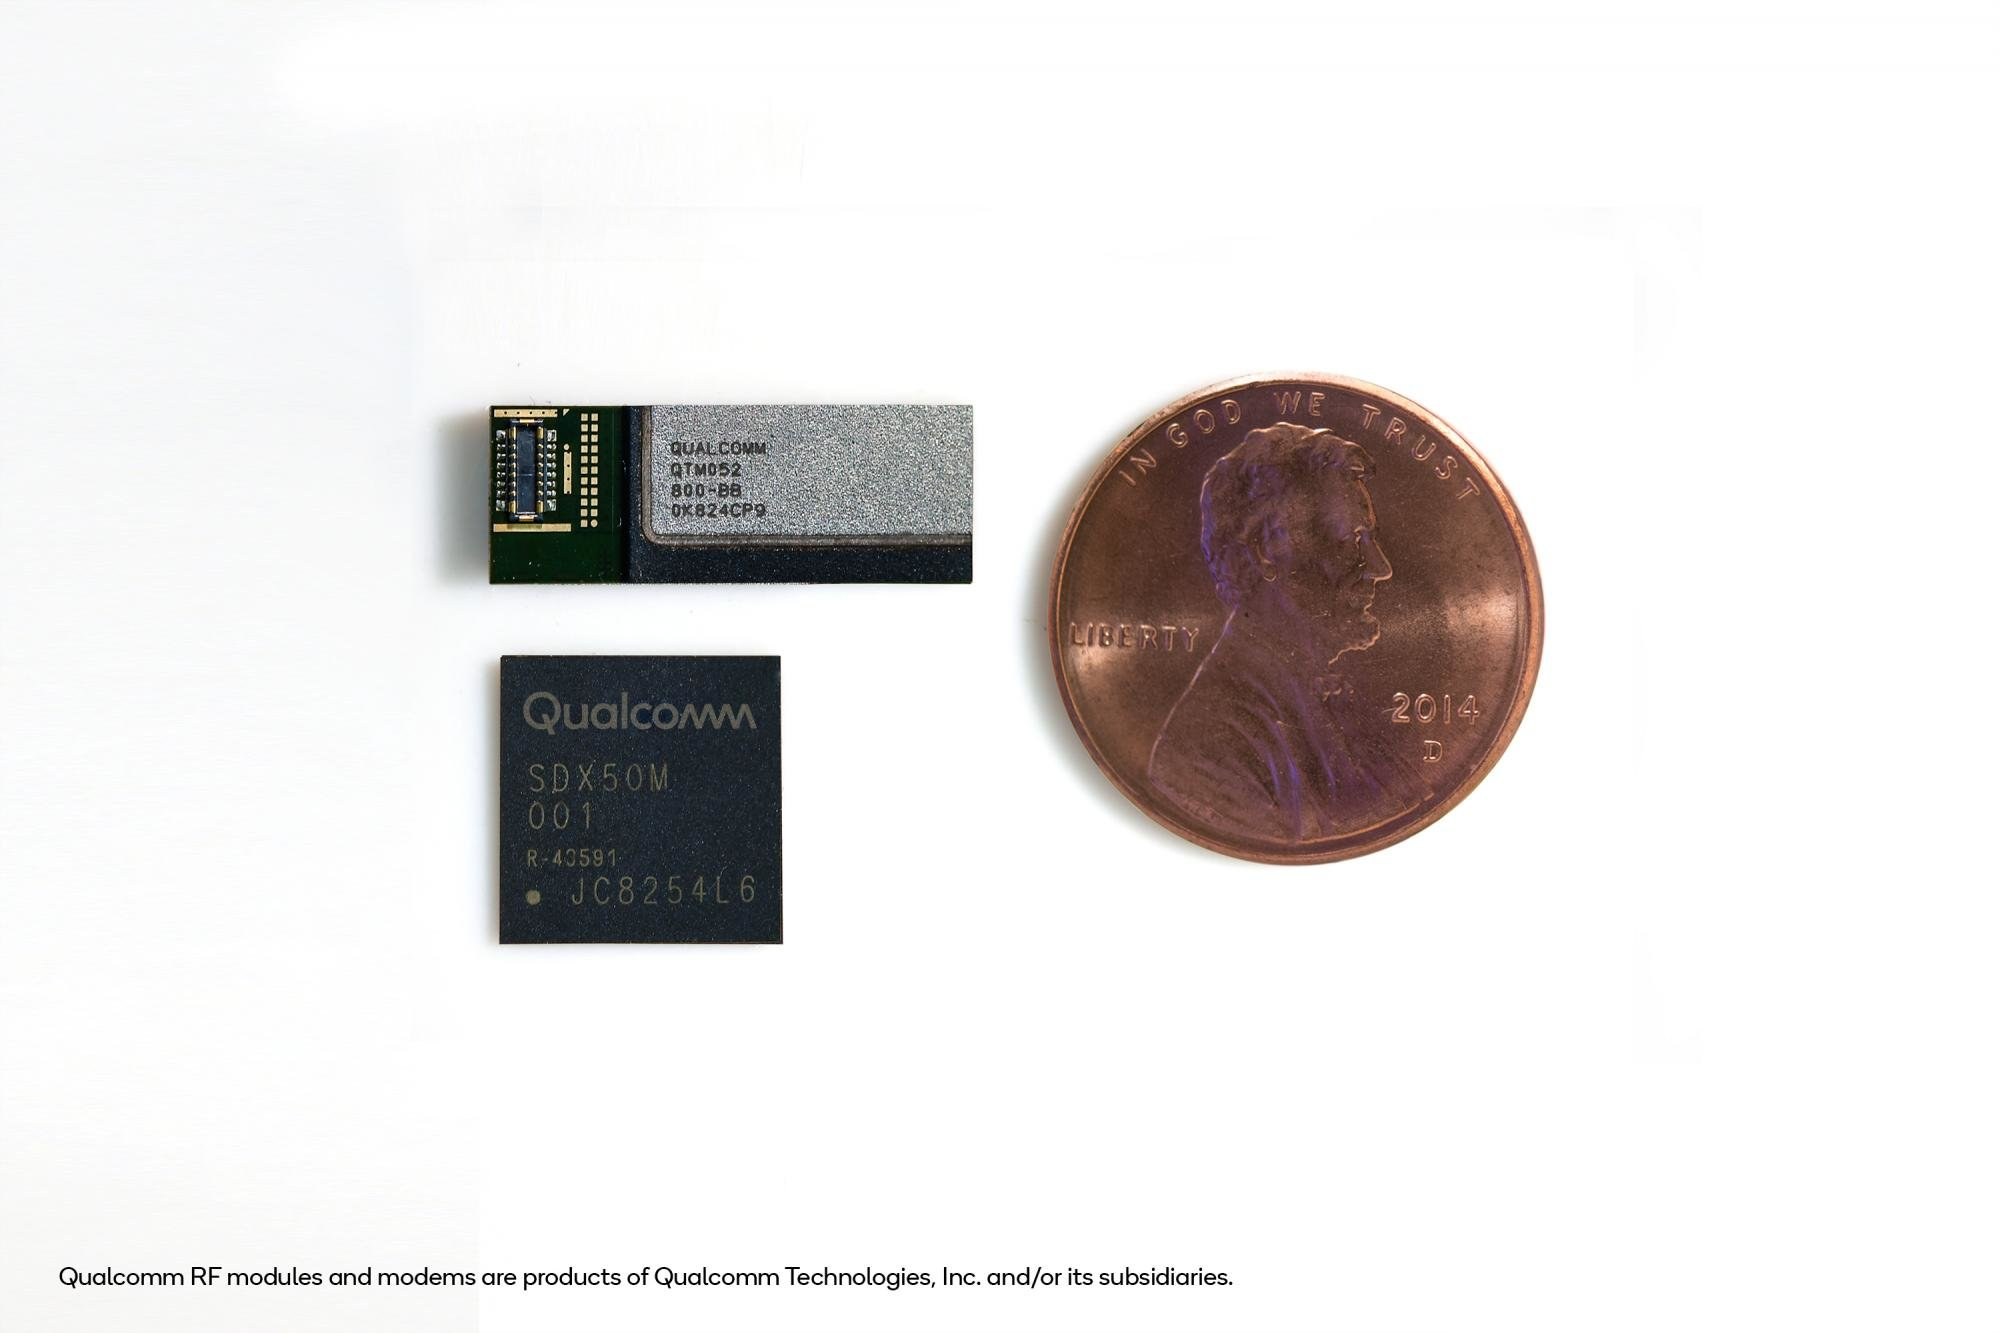 Qualcomm is packaging up 5G phones with antenna modules